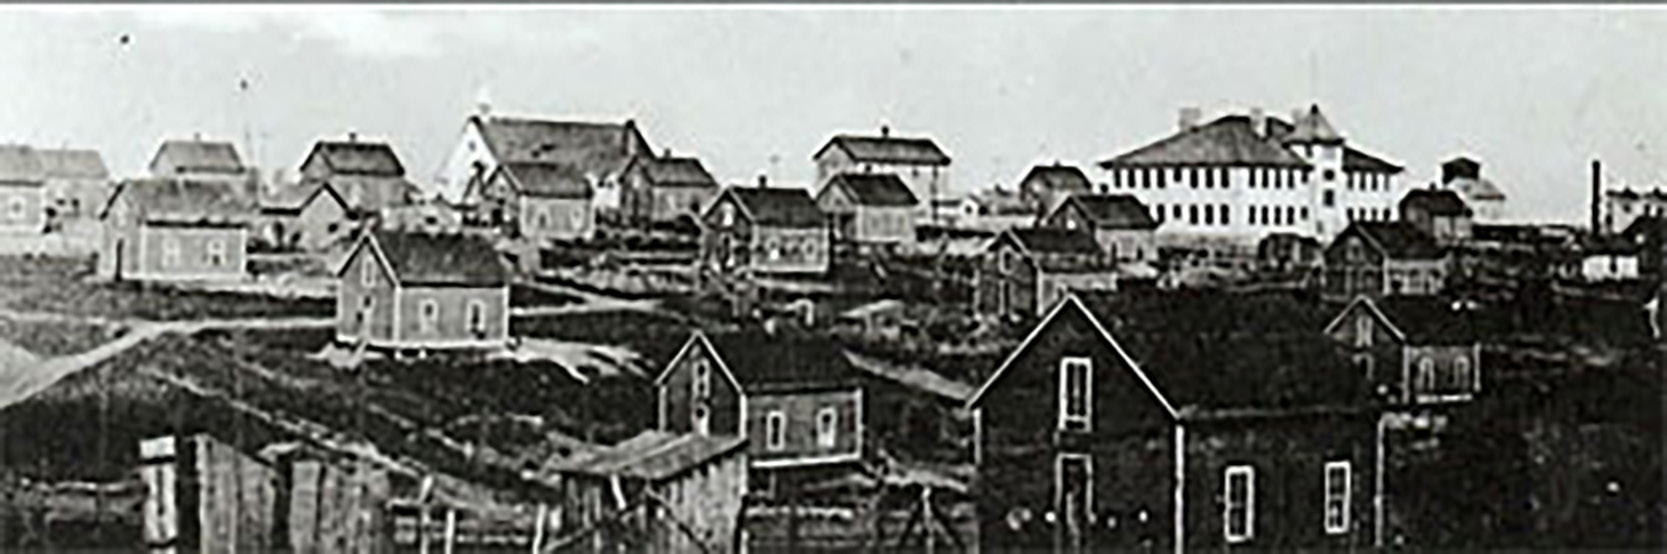 Buxton, Iowa, as it was at the turn of the 19th and 20th Centuries. Public-domain image from [Blackpast.org](http://blackpast.org).